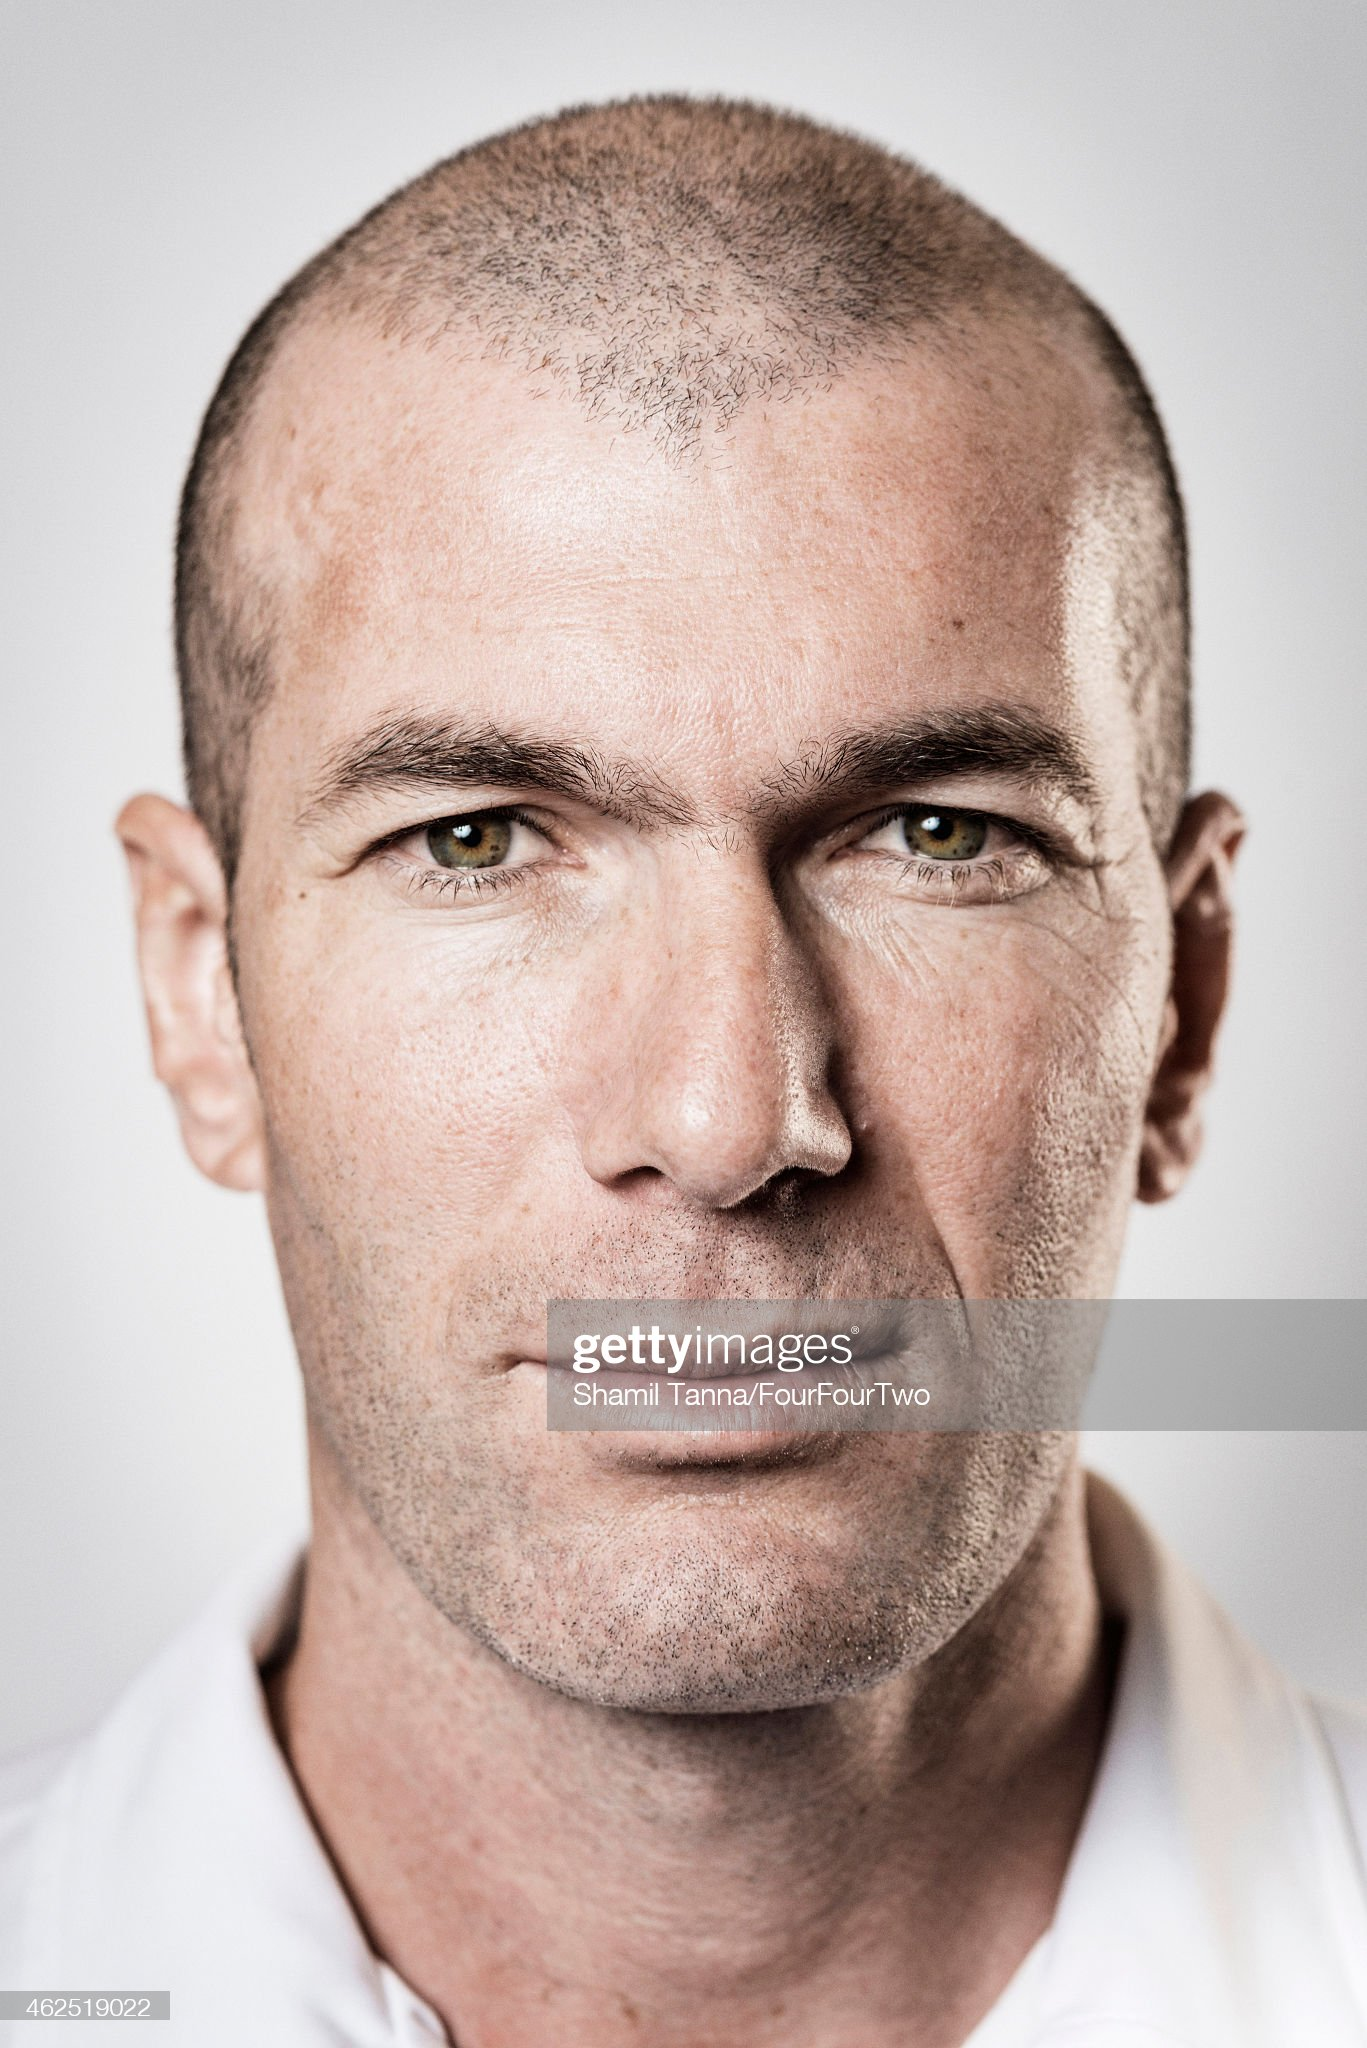 COLOR DE OJOS (clasificación y debate de personas famosas) Footballing-legend-zinedine-zidane-is-photographed-for-fourfourtwo-picture-id462519022?s=2048x2048